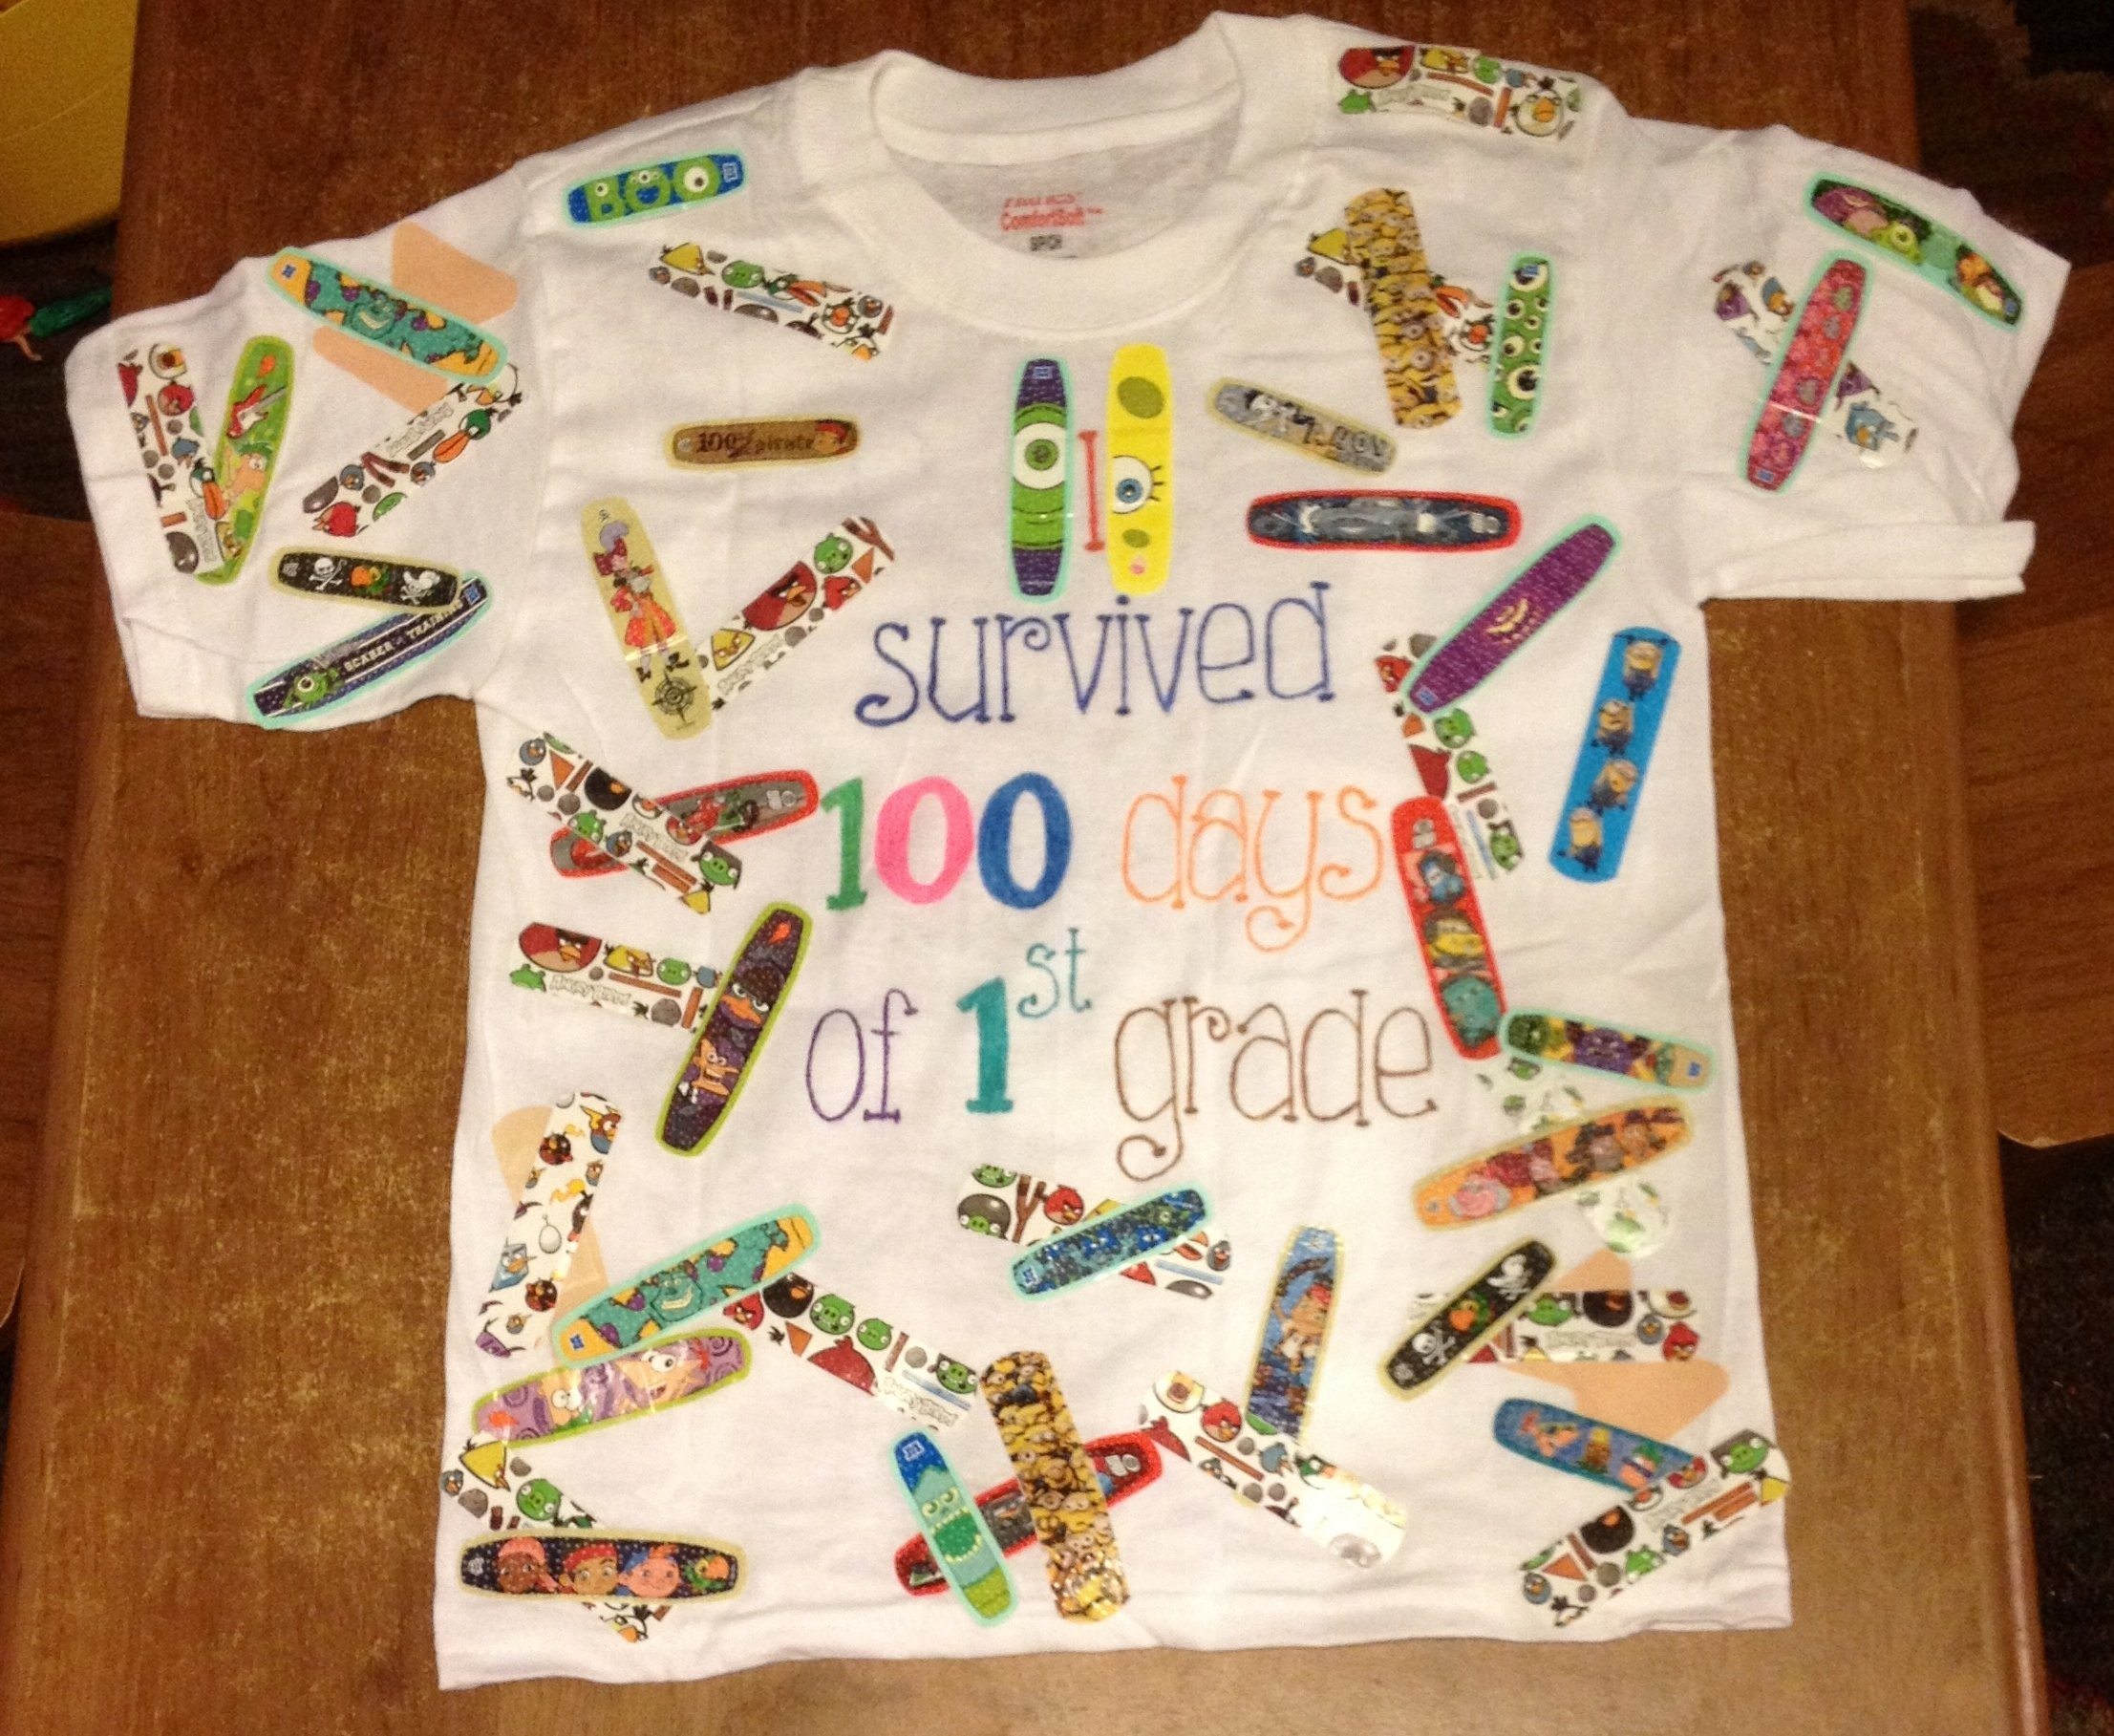 10 Perfect Ideas For 100 Days Of School Project 100th day of school crafts activities and printables live and learn 3 2021